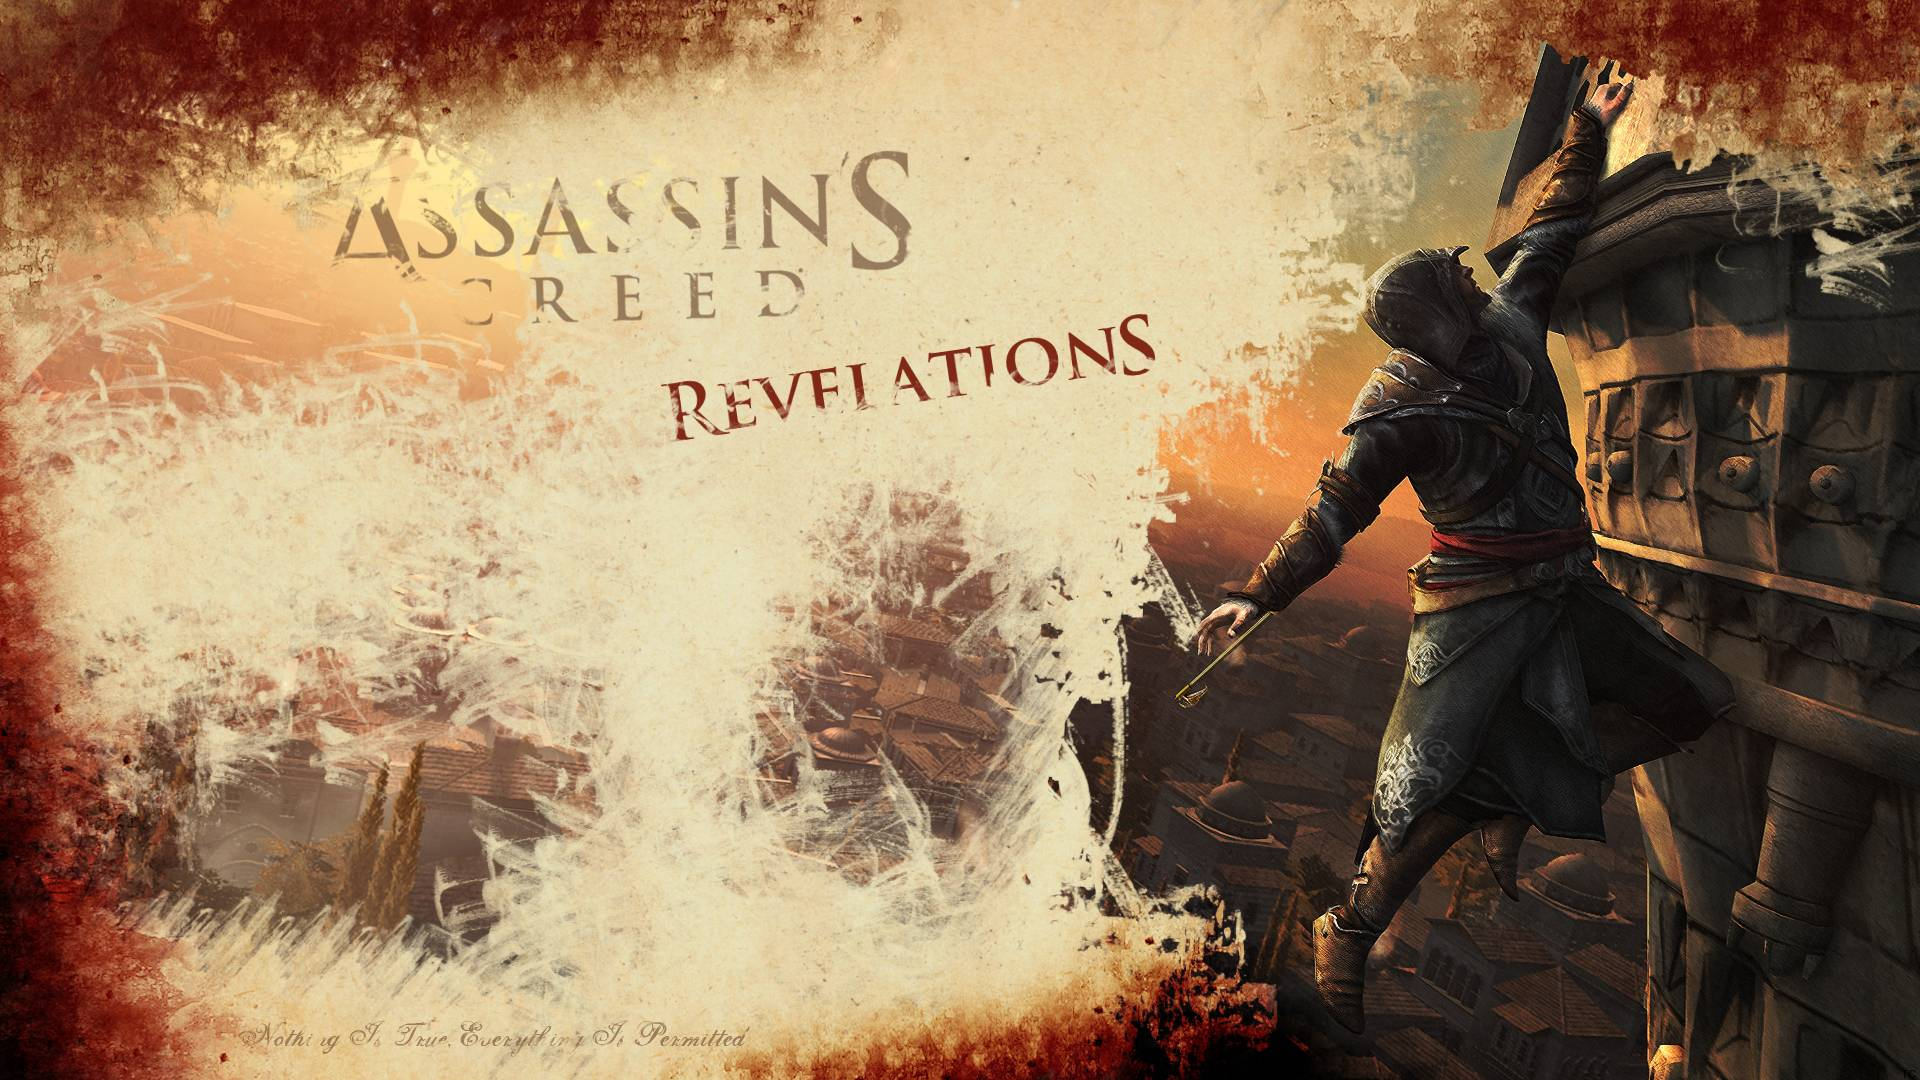 Assassins Creed Revelations Wallpapers In 1080p Hd Page 3